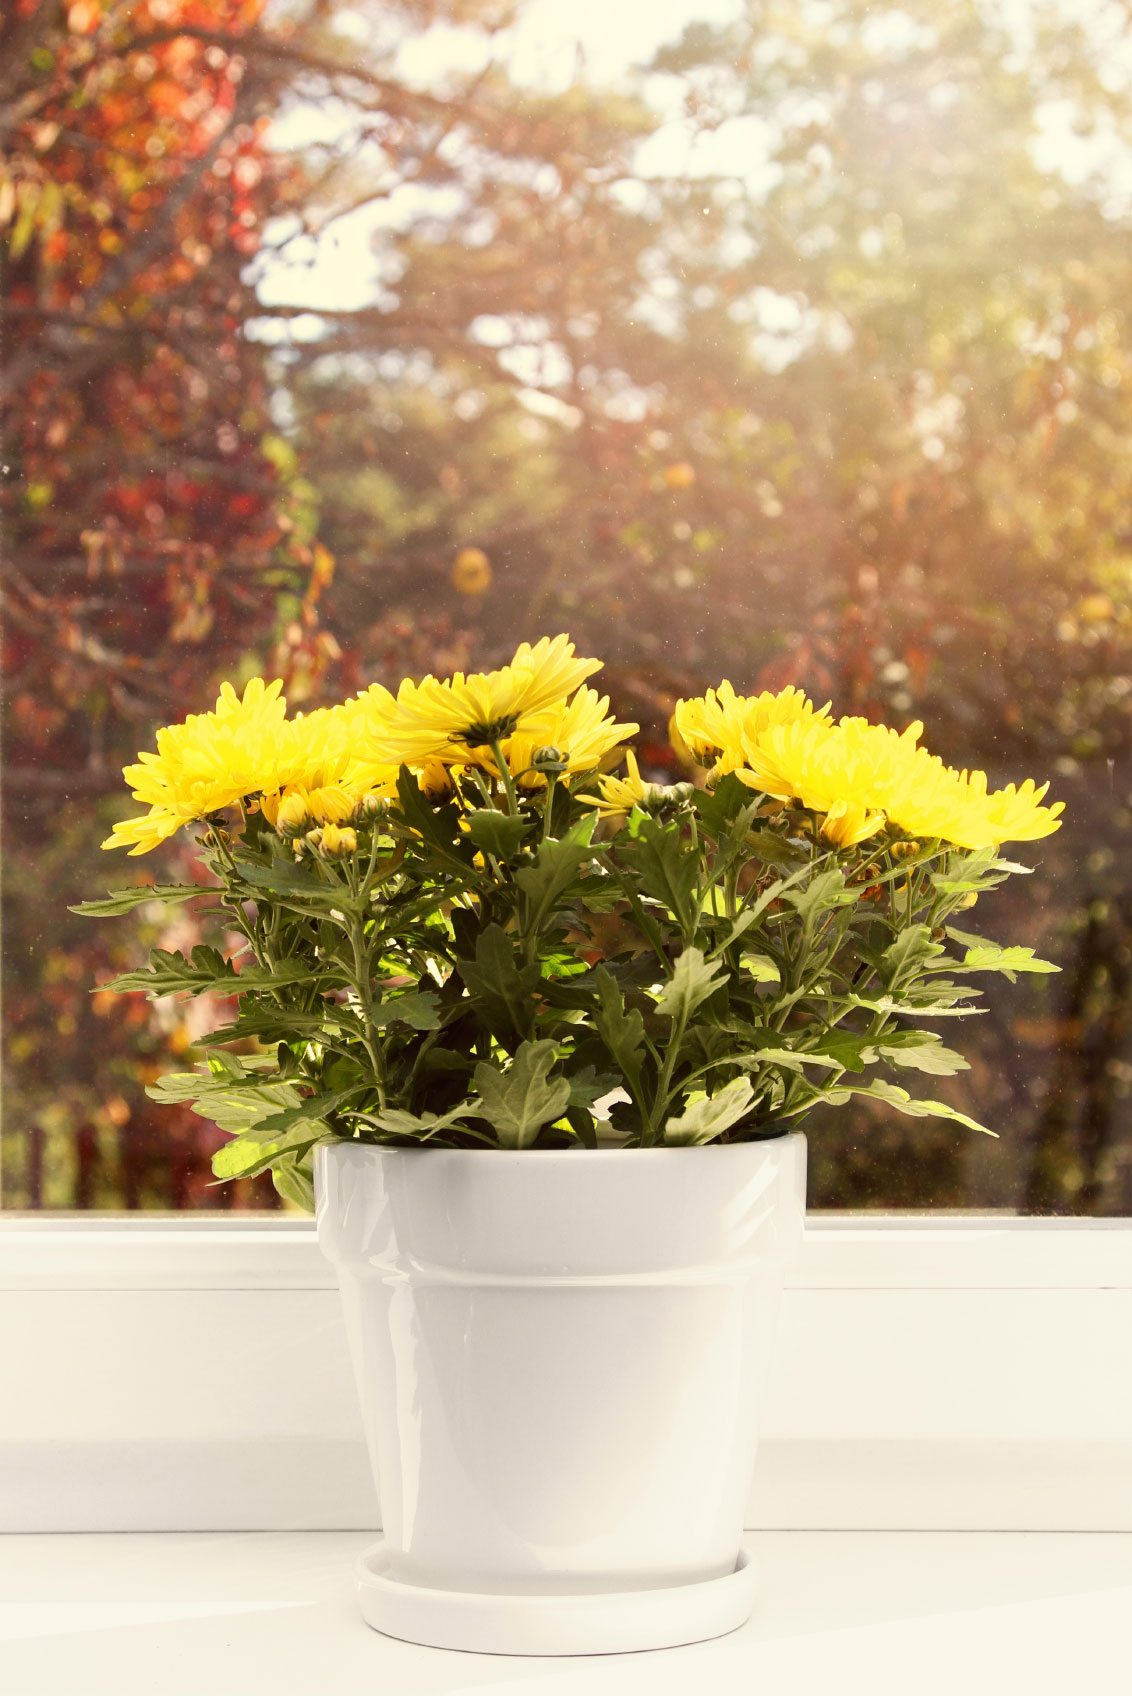 chrysanthemum houseplants